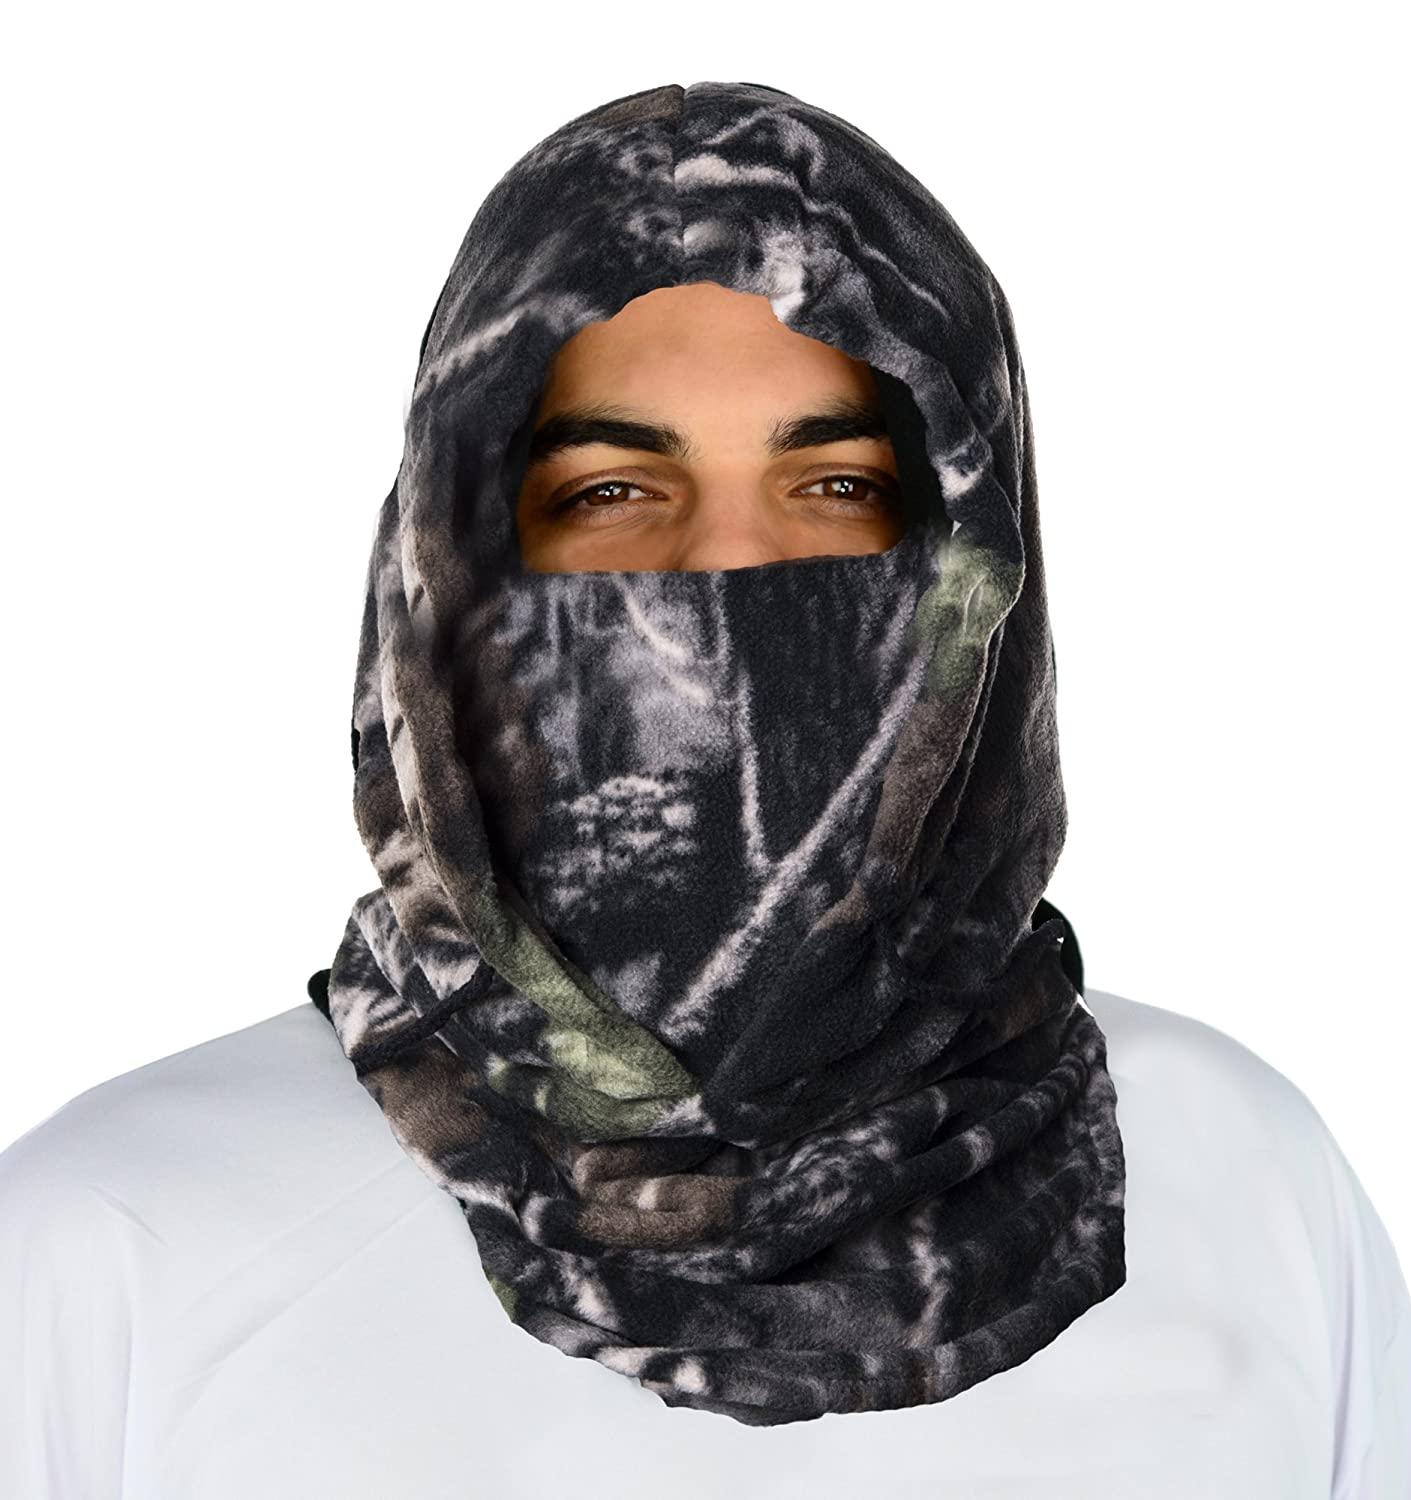 cb4c5e55cc395 Balaclava Mask - Snowboarding Face Masks - Cold Weather Gear - By Mato     Hash